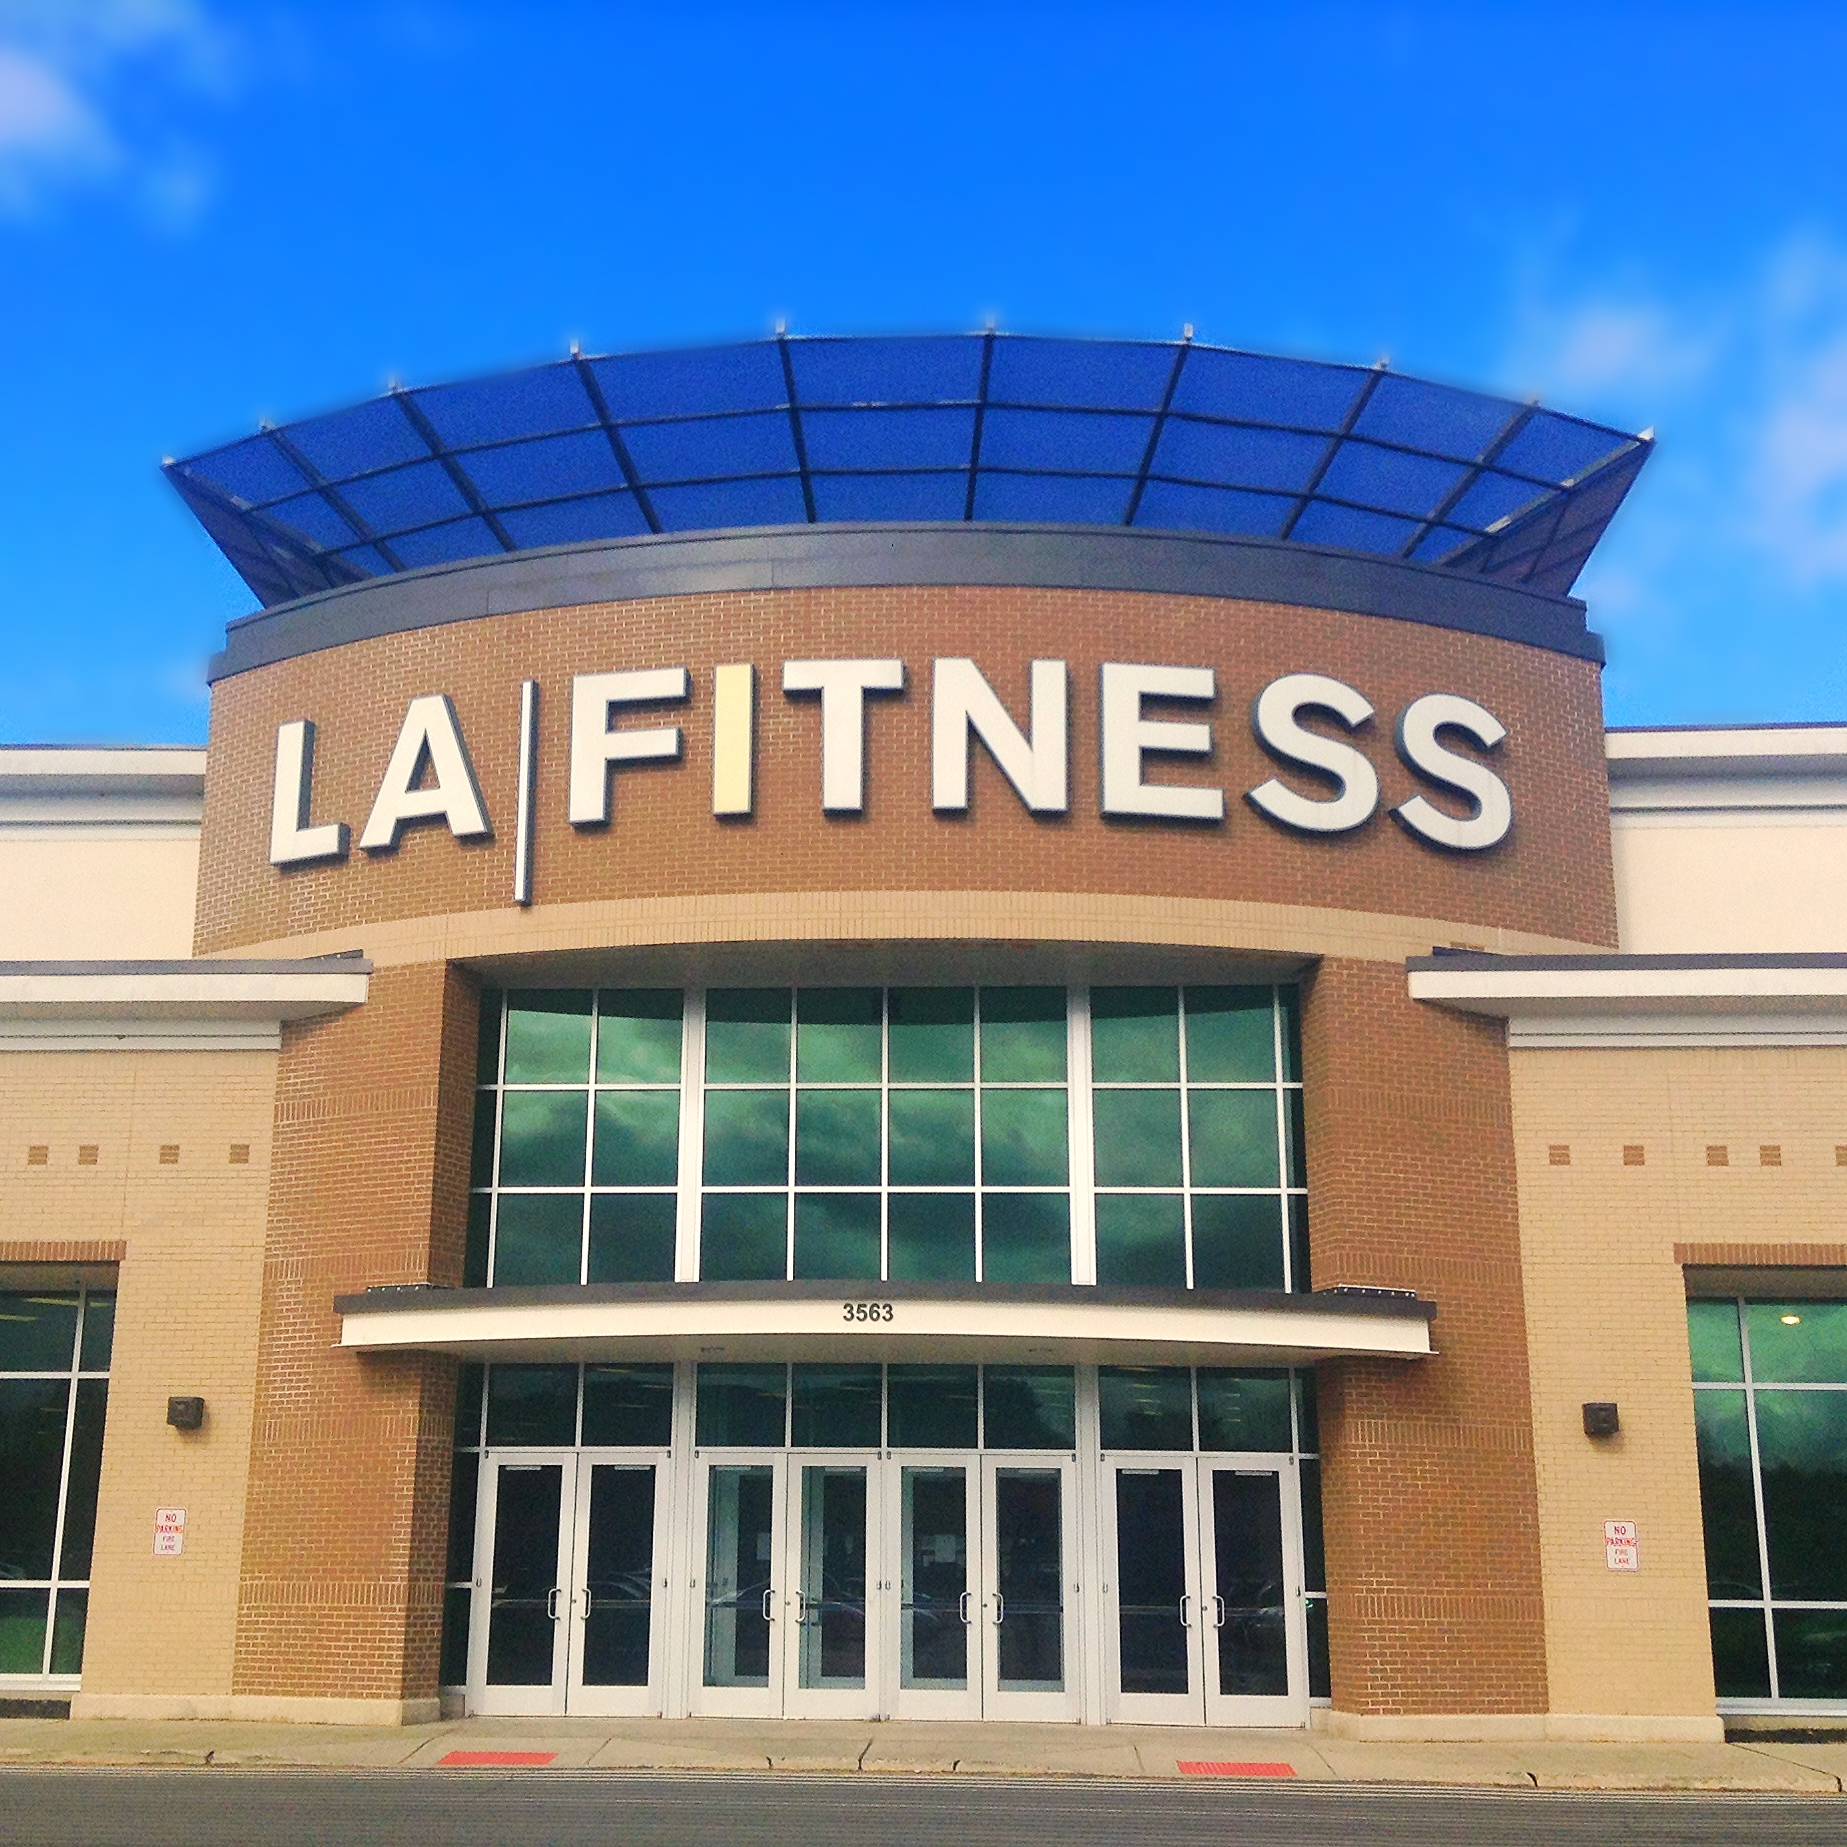 la fitness 46 reviews of la fitness i have been to 8 different la fitness locations in the past month this one is average across the board pros: not too packed on weekends.